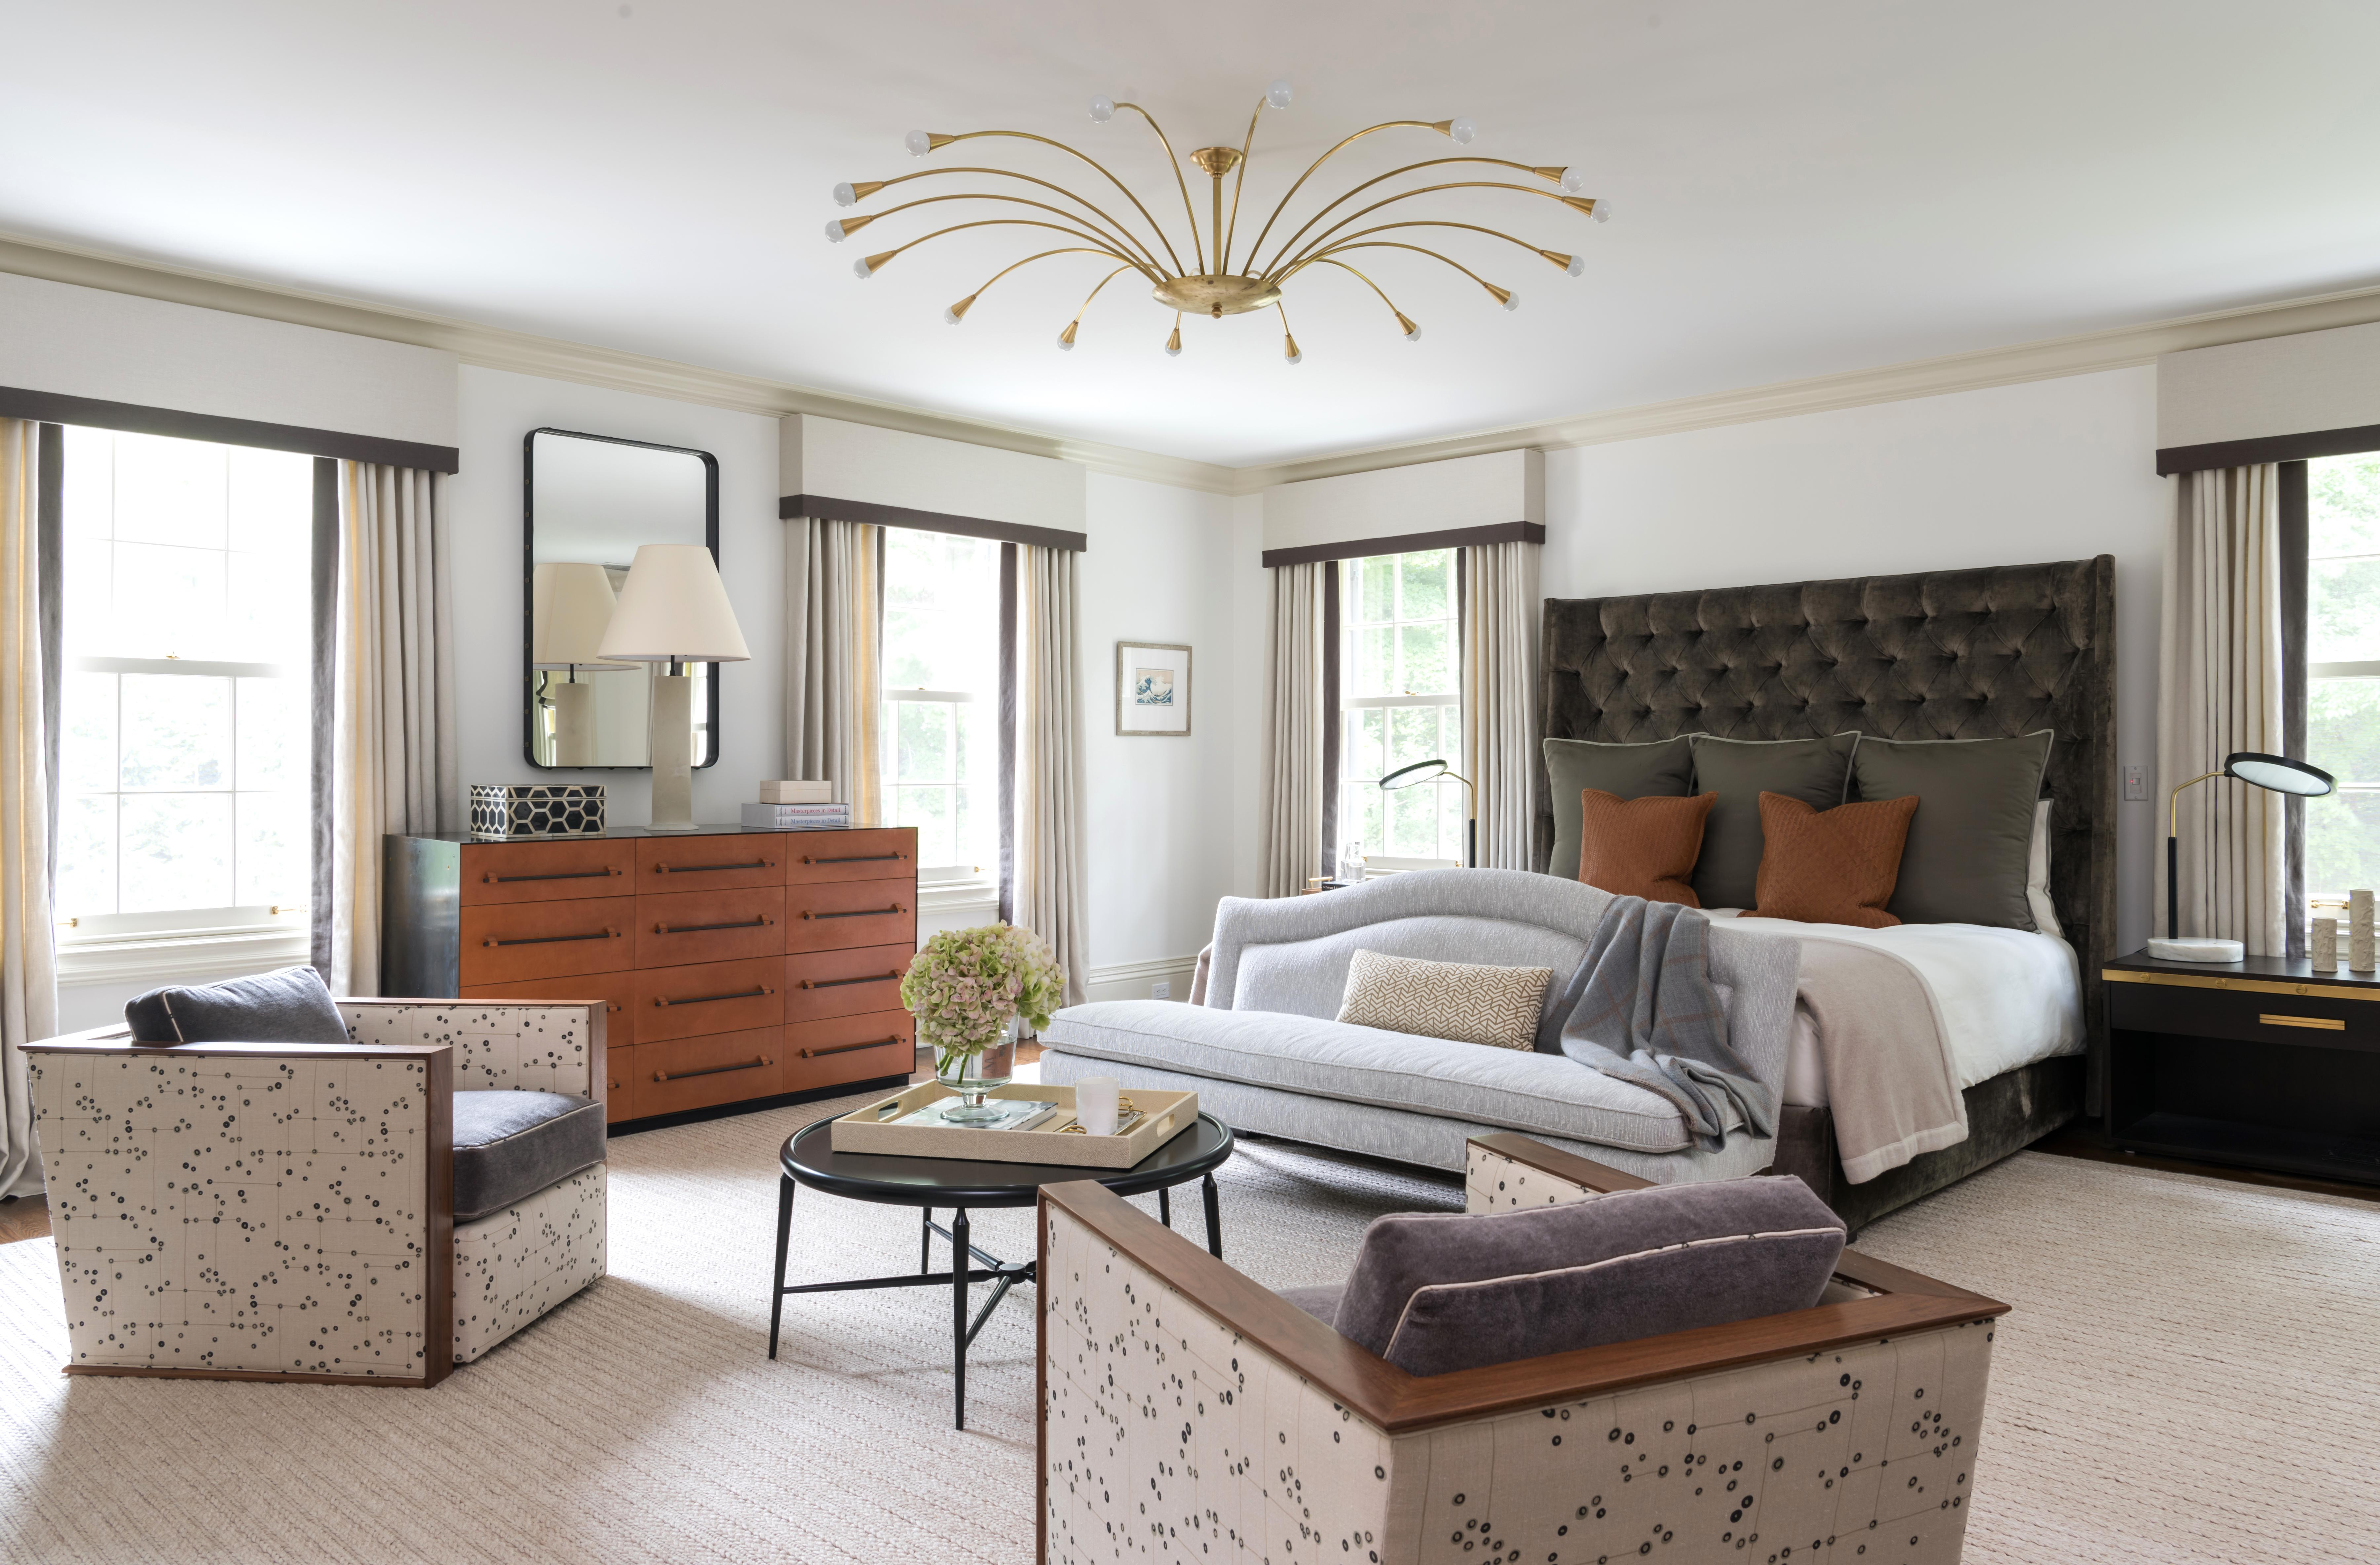 Decoration Ideas for Bedrooms Best Of 175 Stylish Bedroom ...